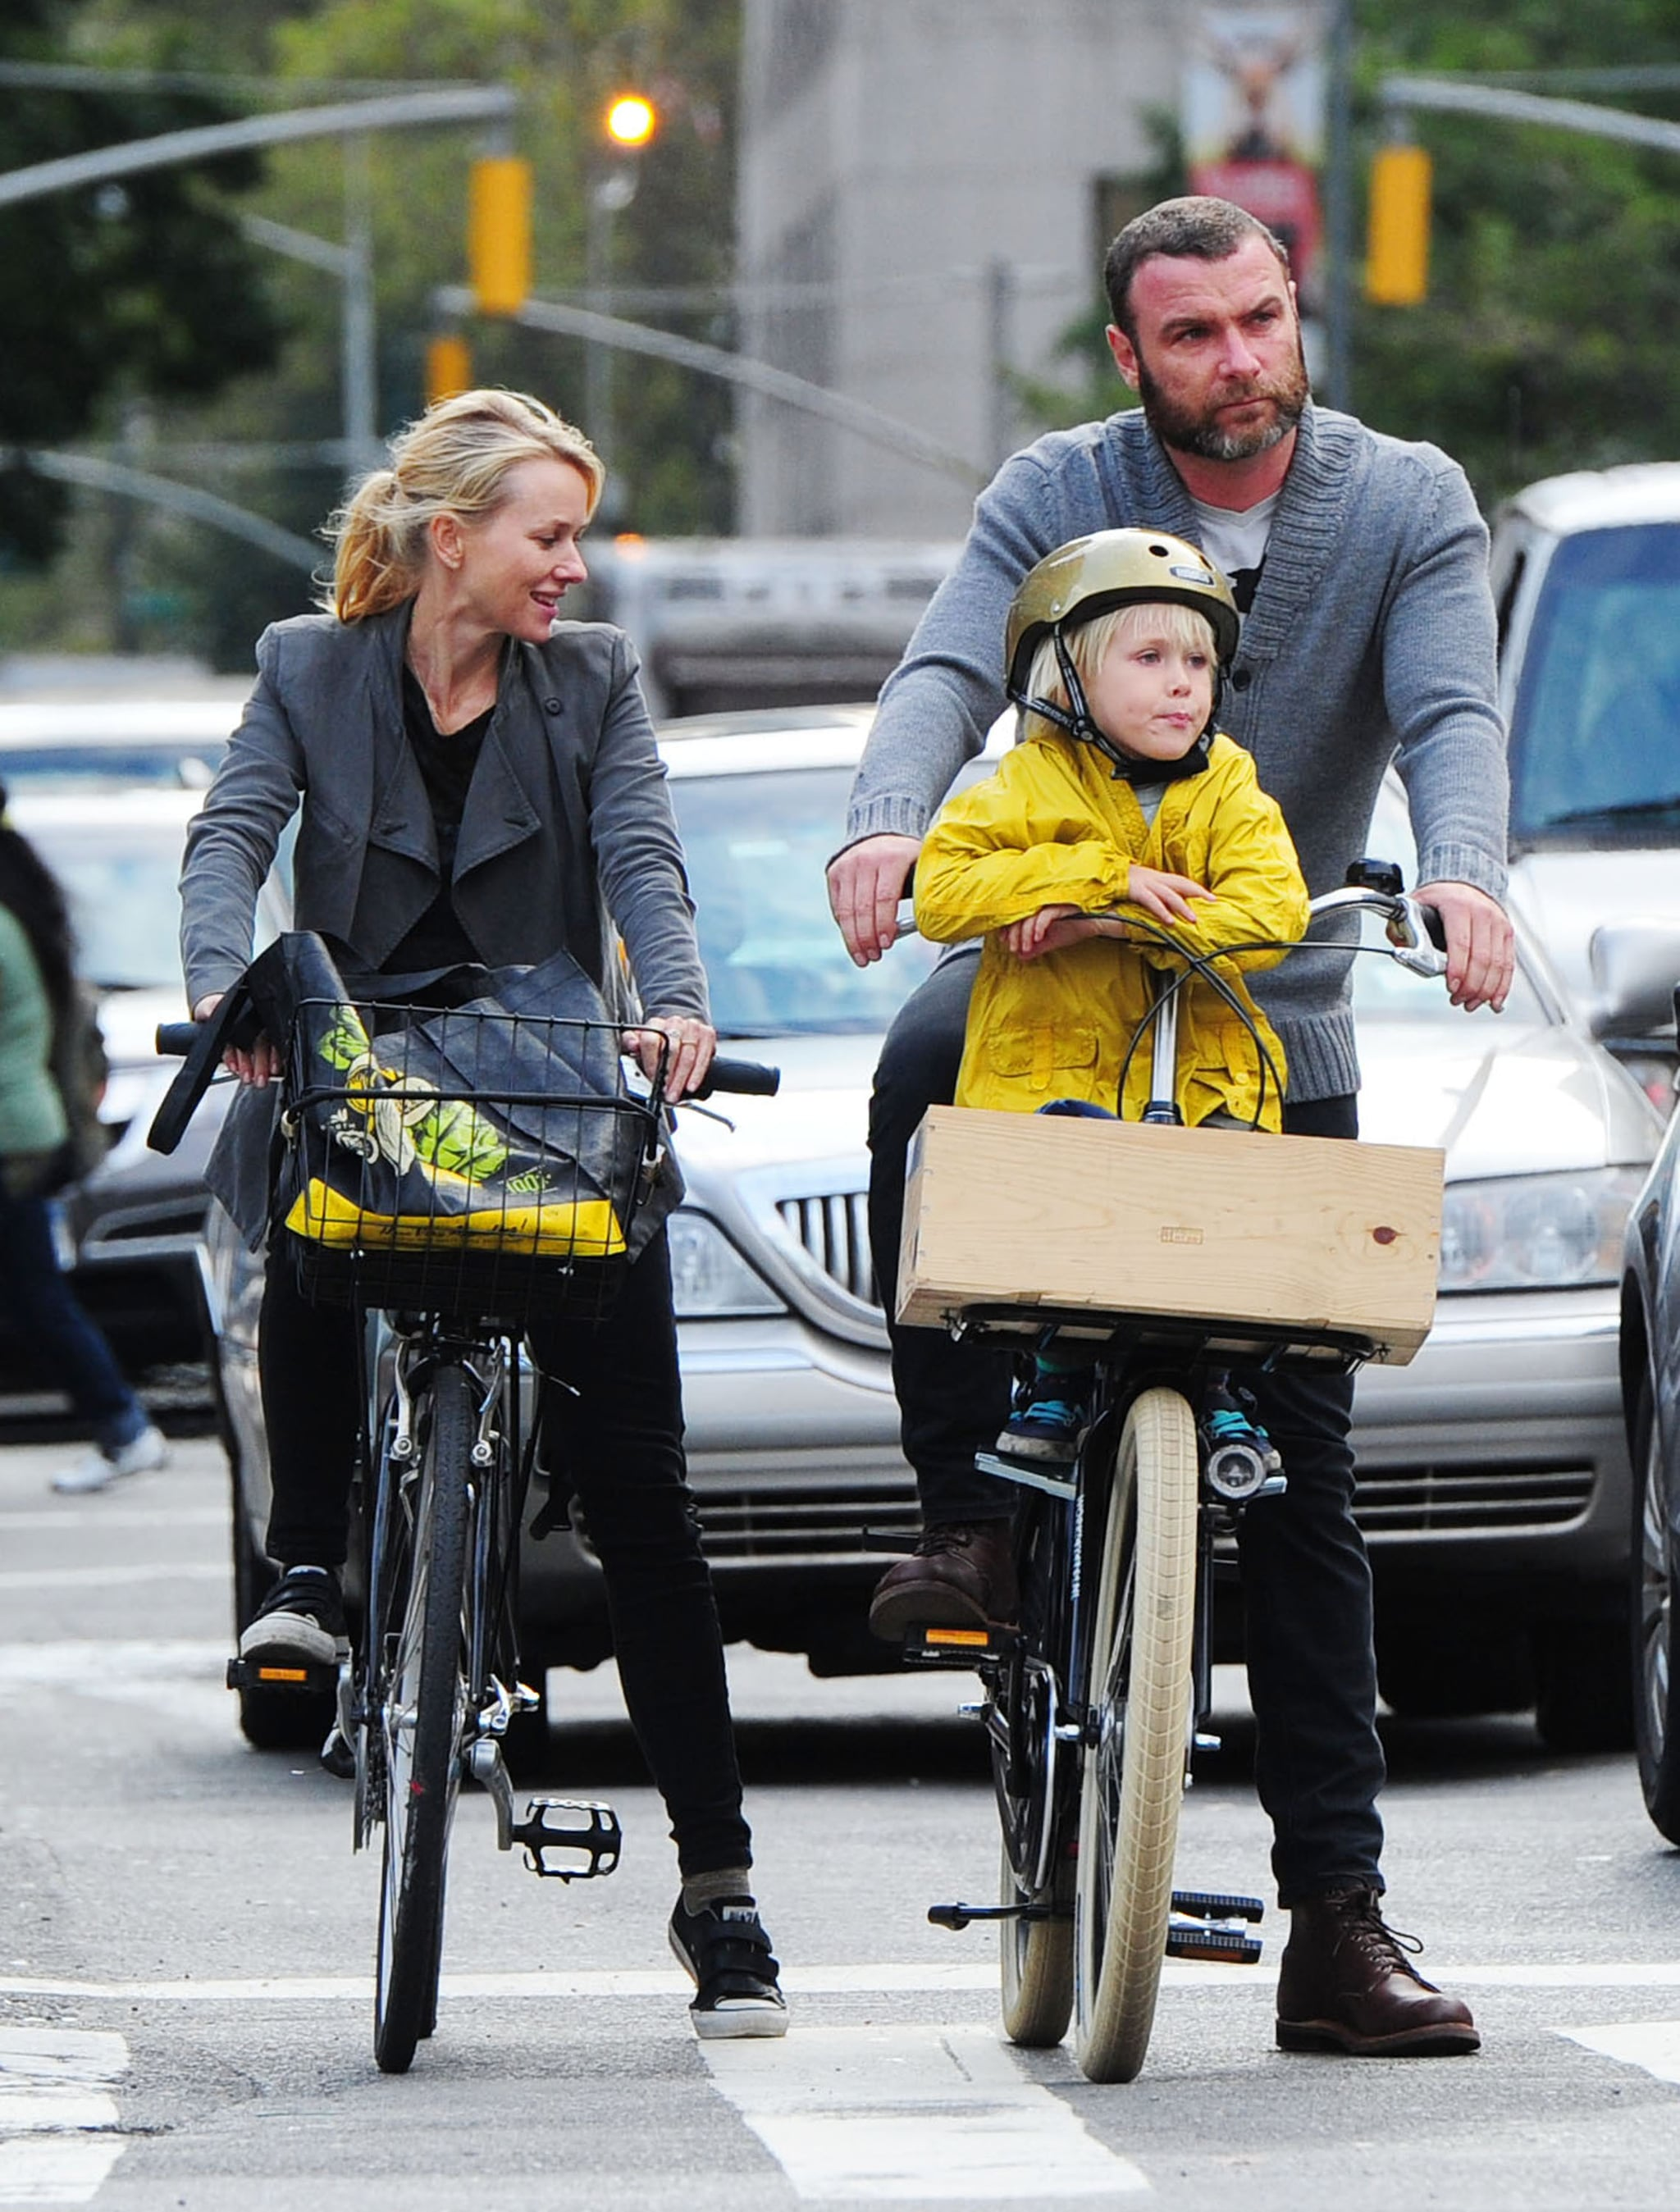 Naomi Watts and Liev Schreiber took their sons on a bike ride in NYC.